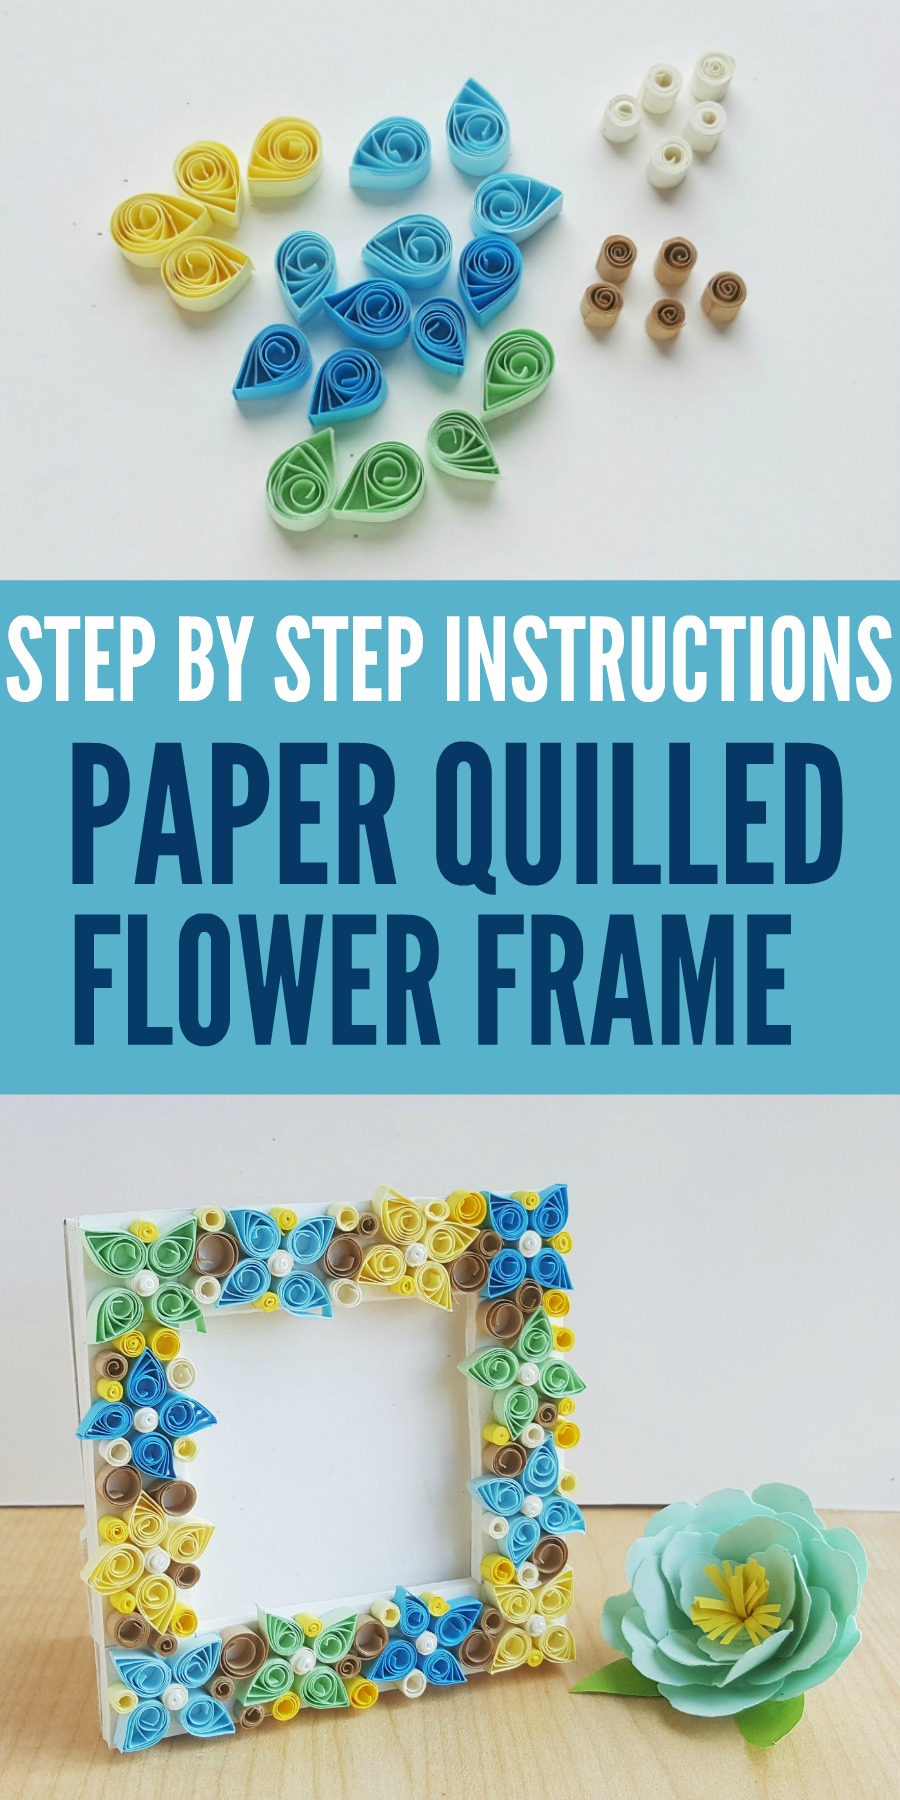 Paper Quilled Flower Frame with Step by Step Instructions